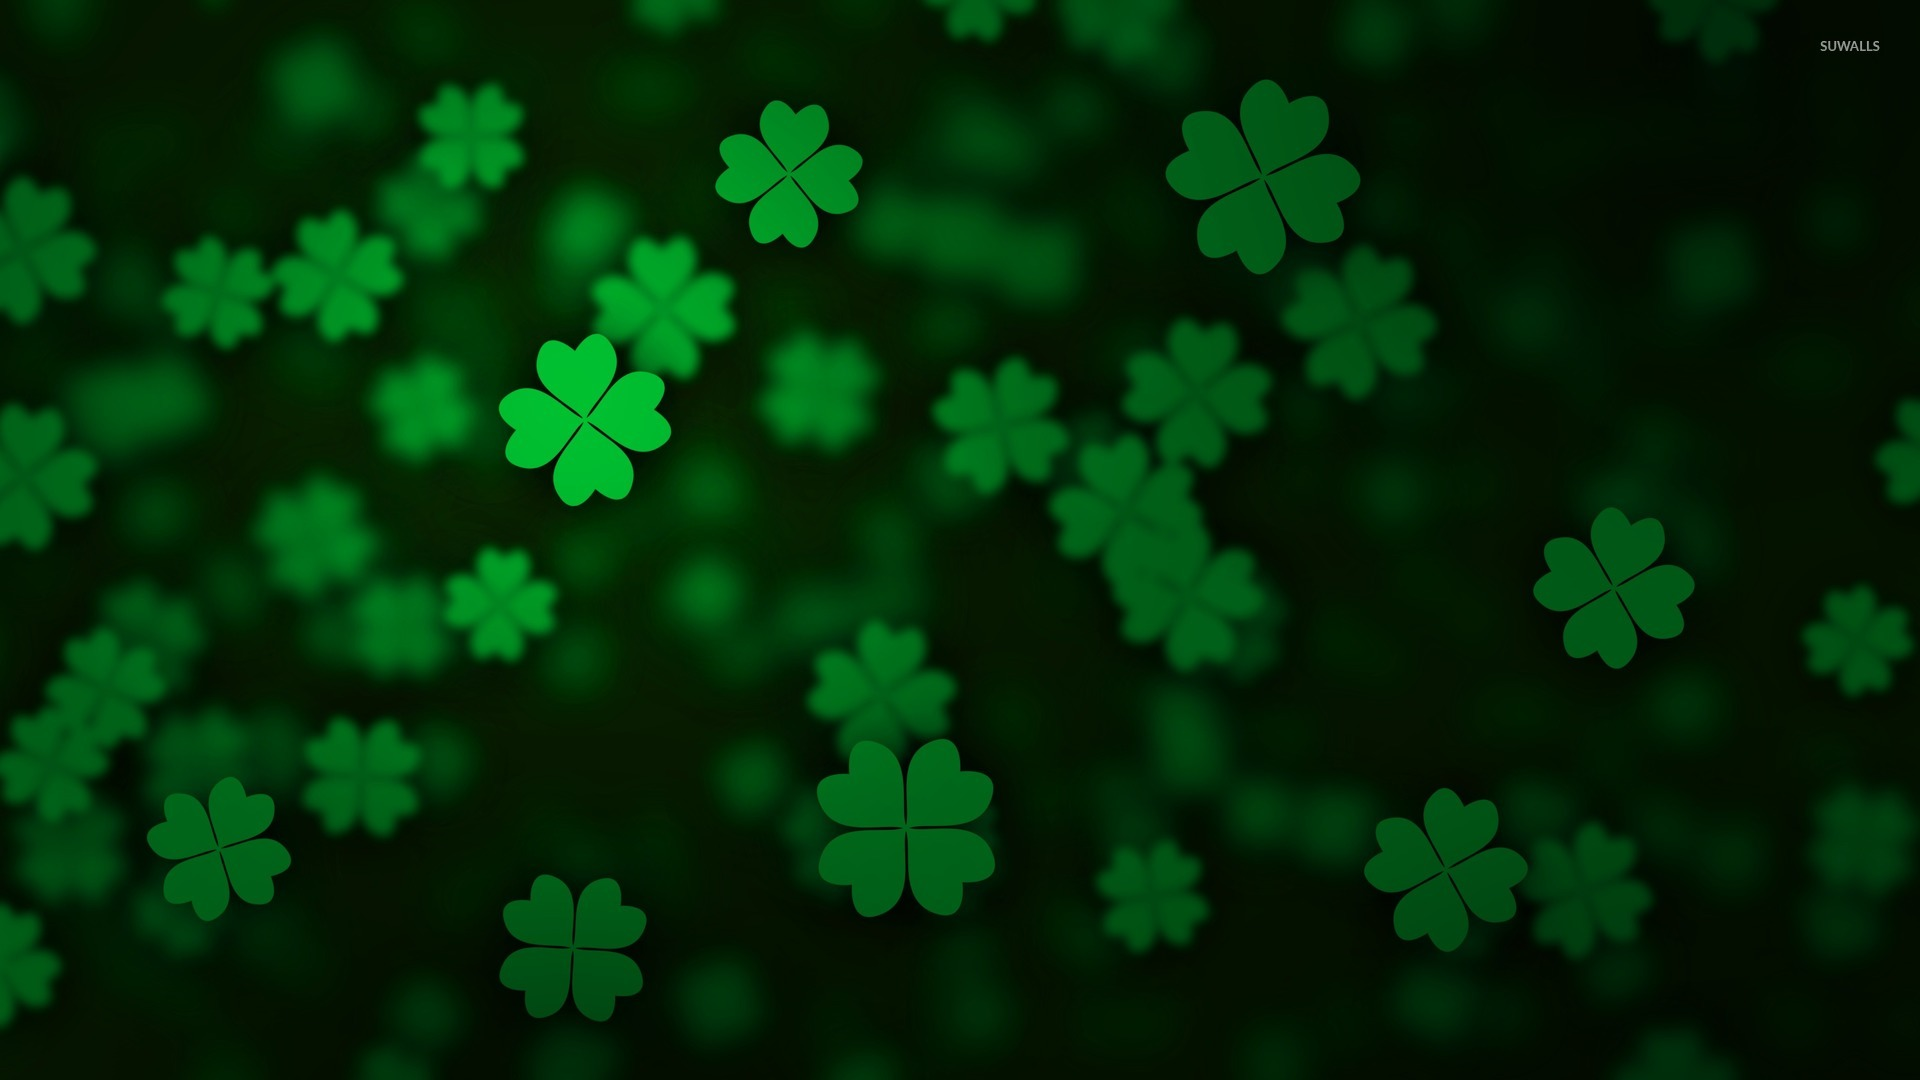 Floating clovers wallpaper   Holiday wallpapers   52888 1920x1080